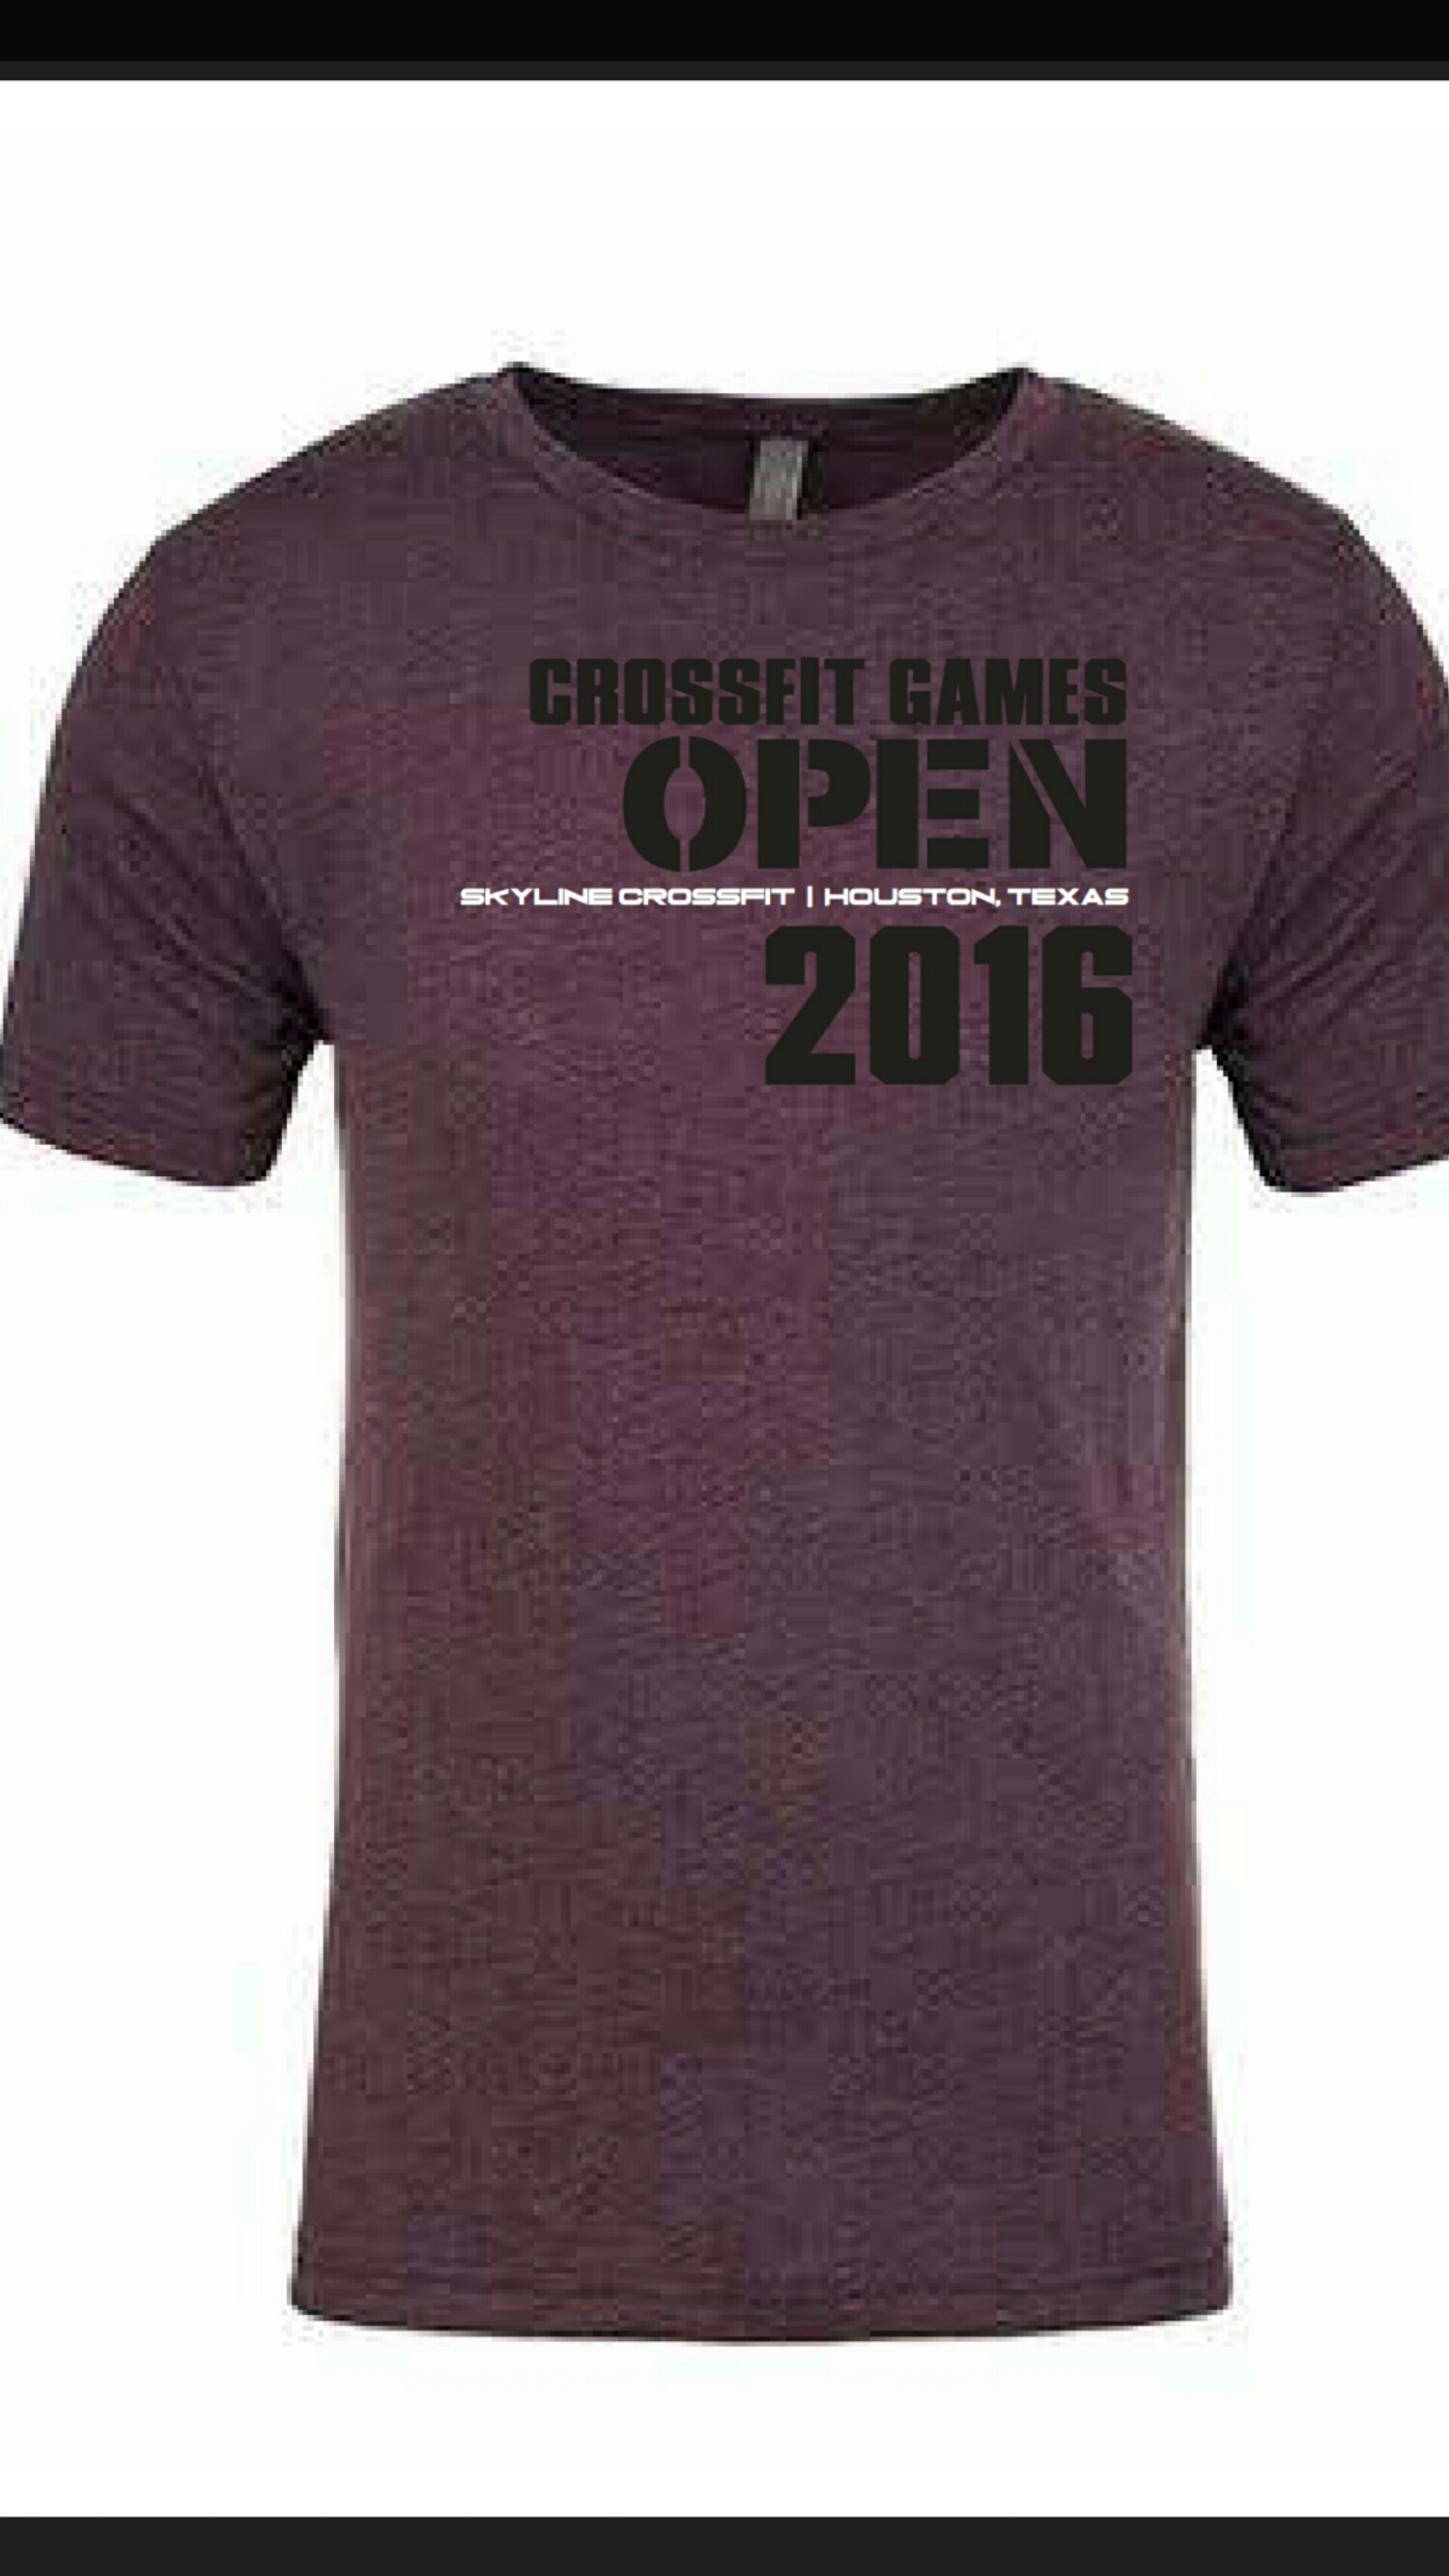 Sign up for your 2016 CrossFit Open shirt! Sign ups at front desk.